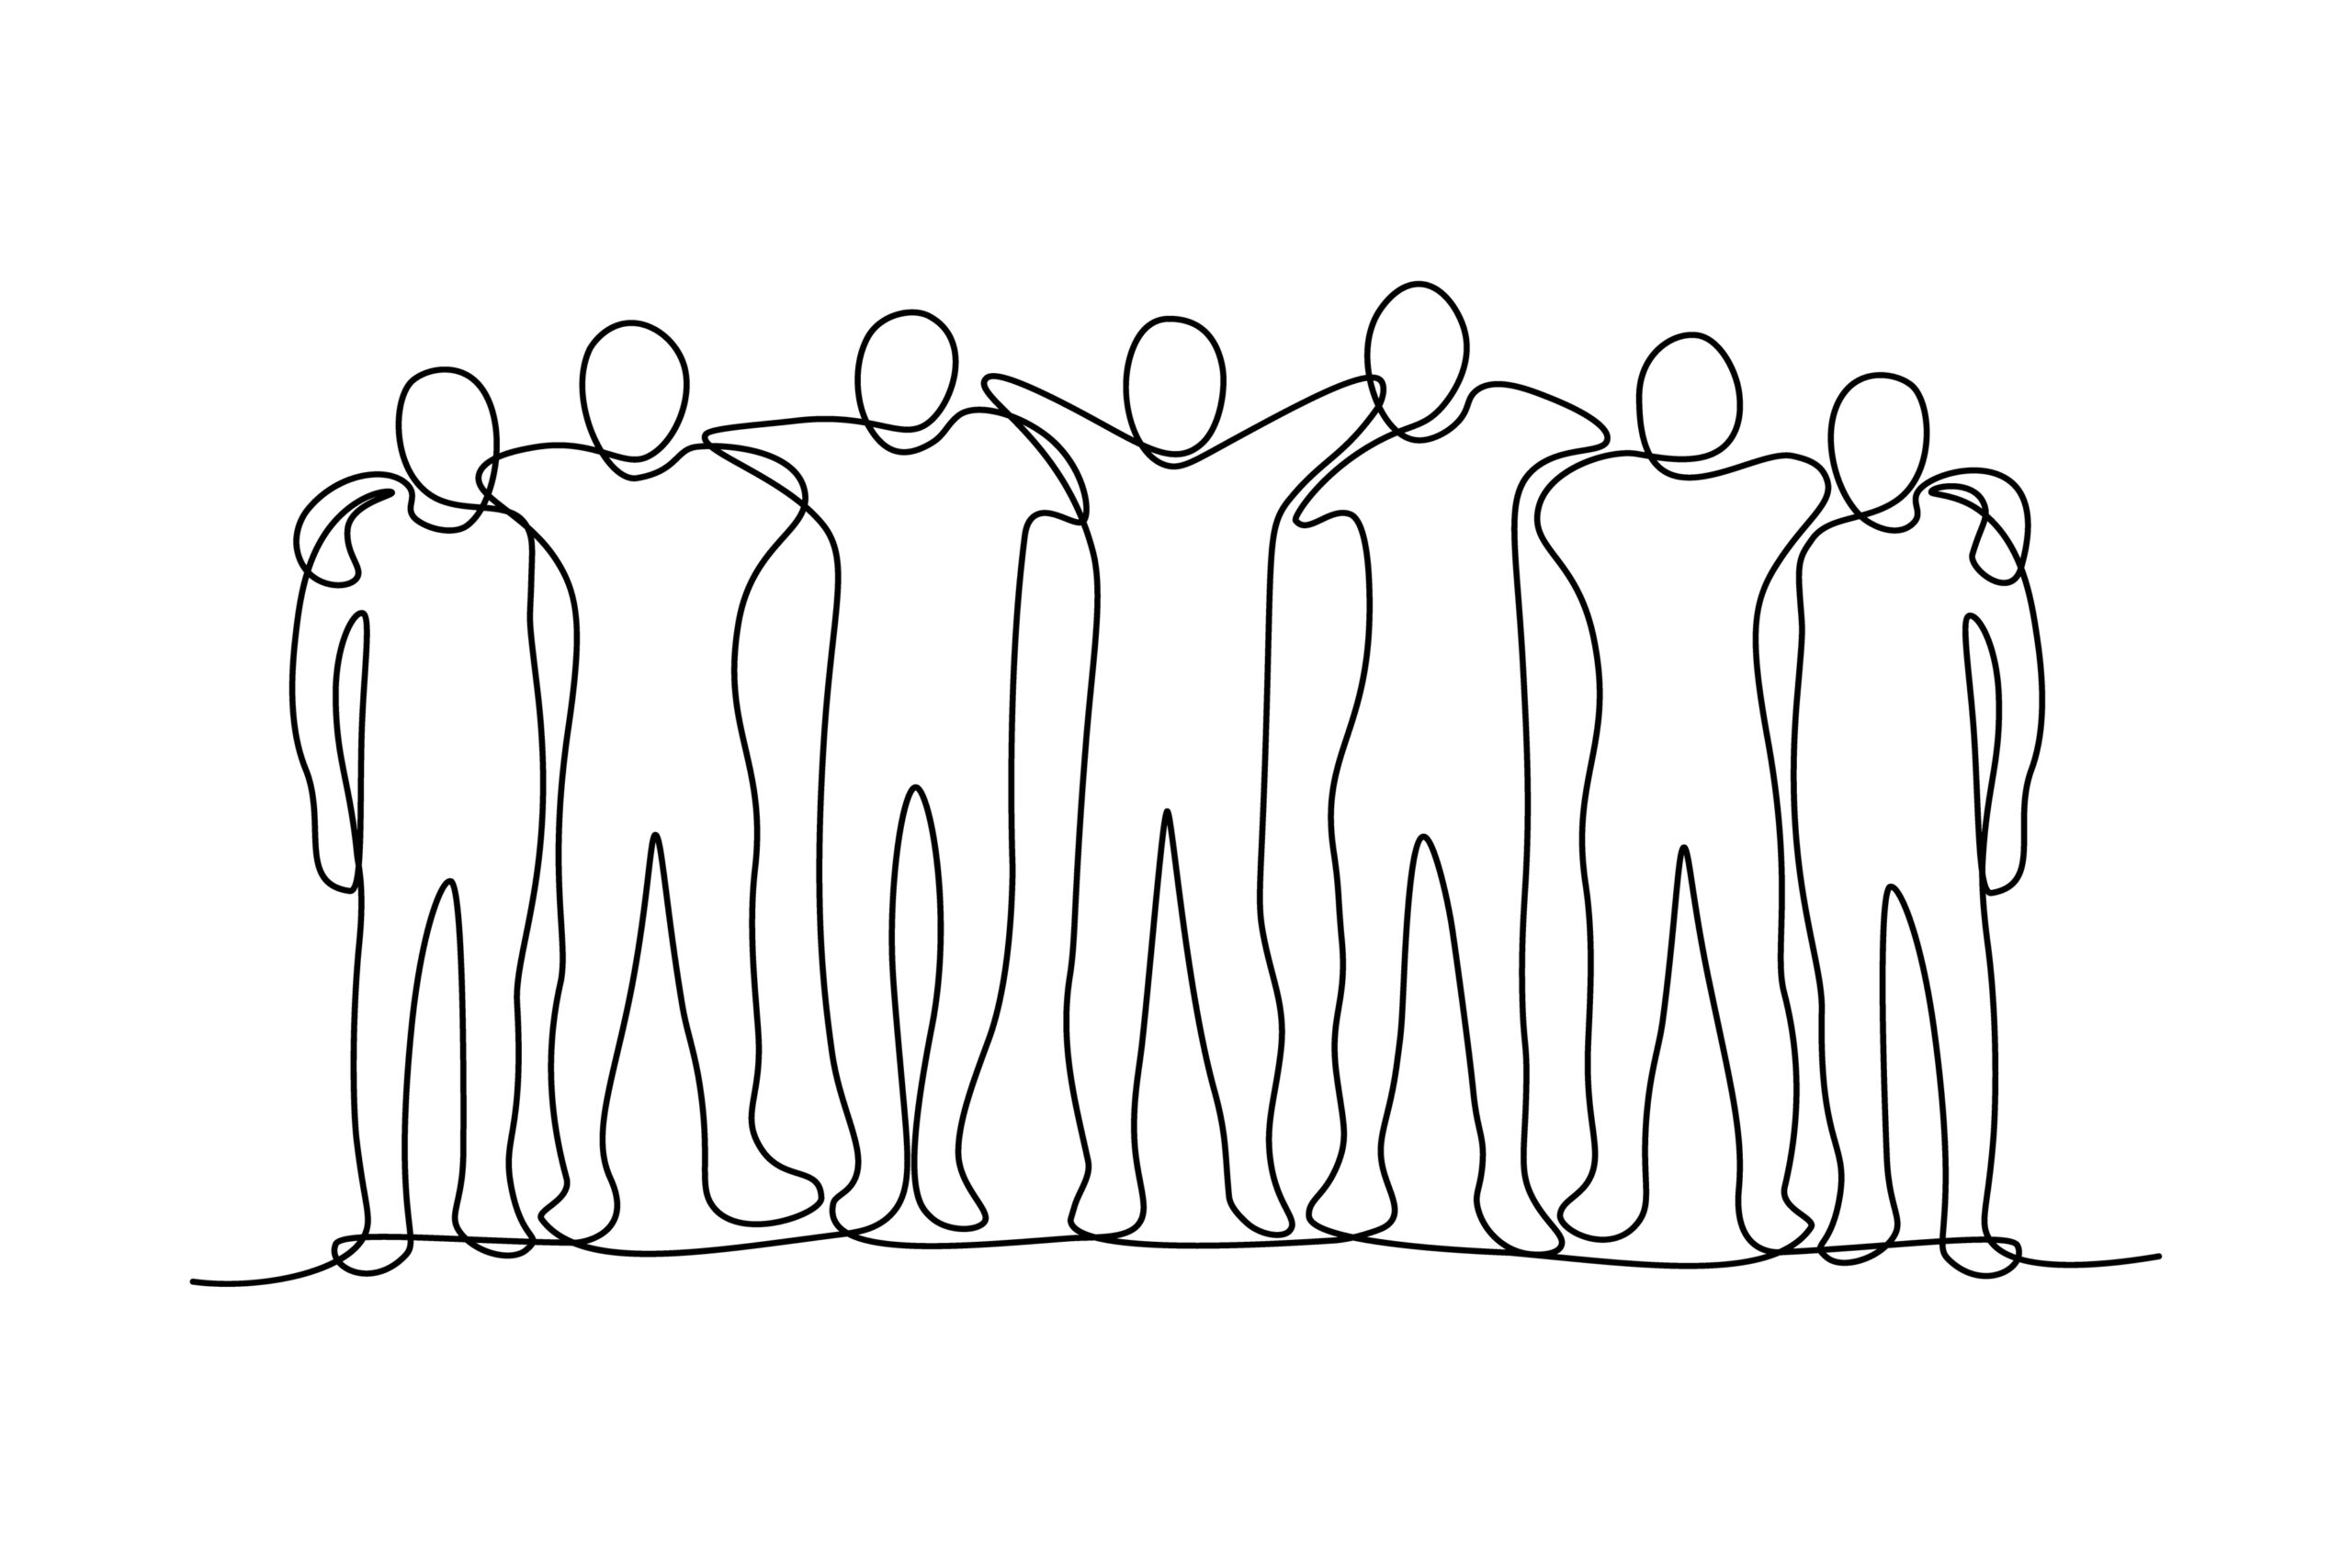 Group of abstract people hugging together in continuous line art drawing style. Friendship and teamwork concept. Minimalist black linear design isolated on white background. Vector illustration